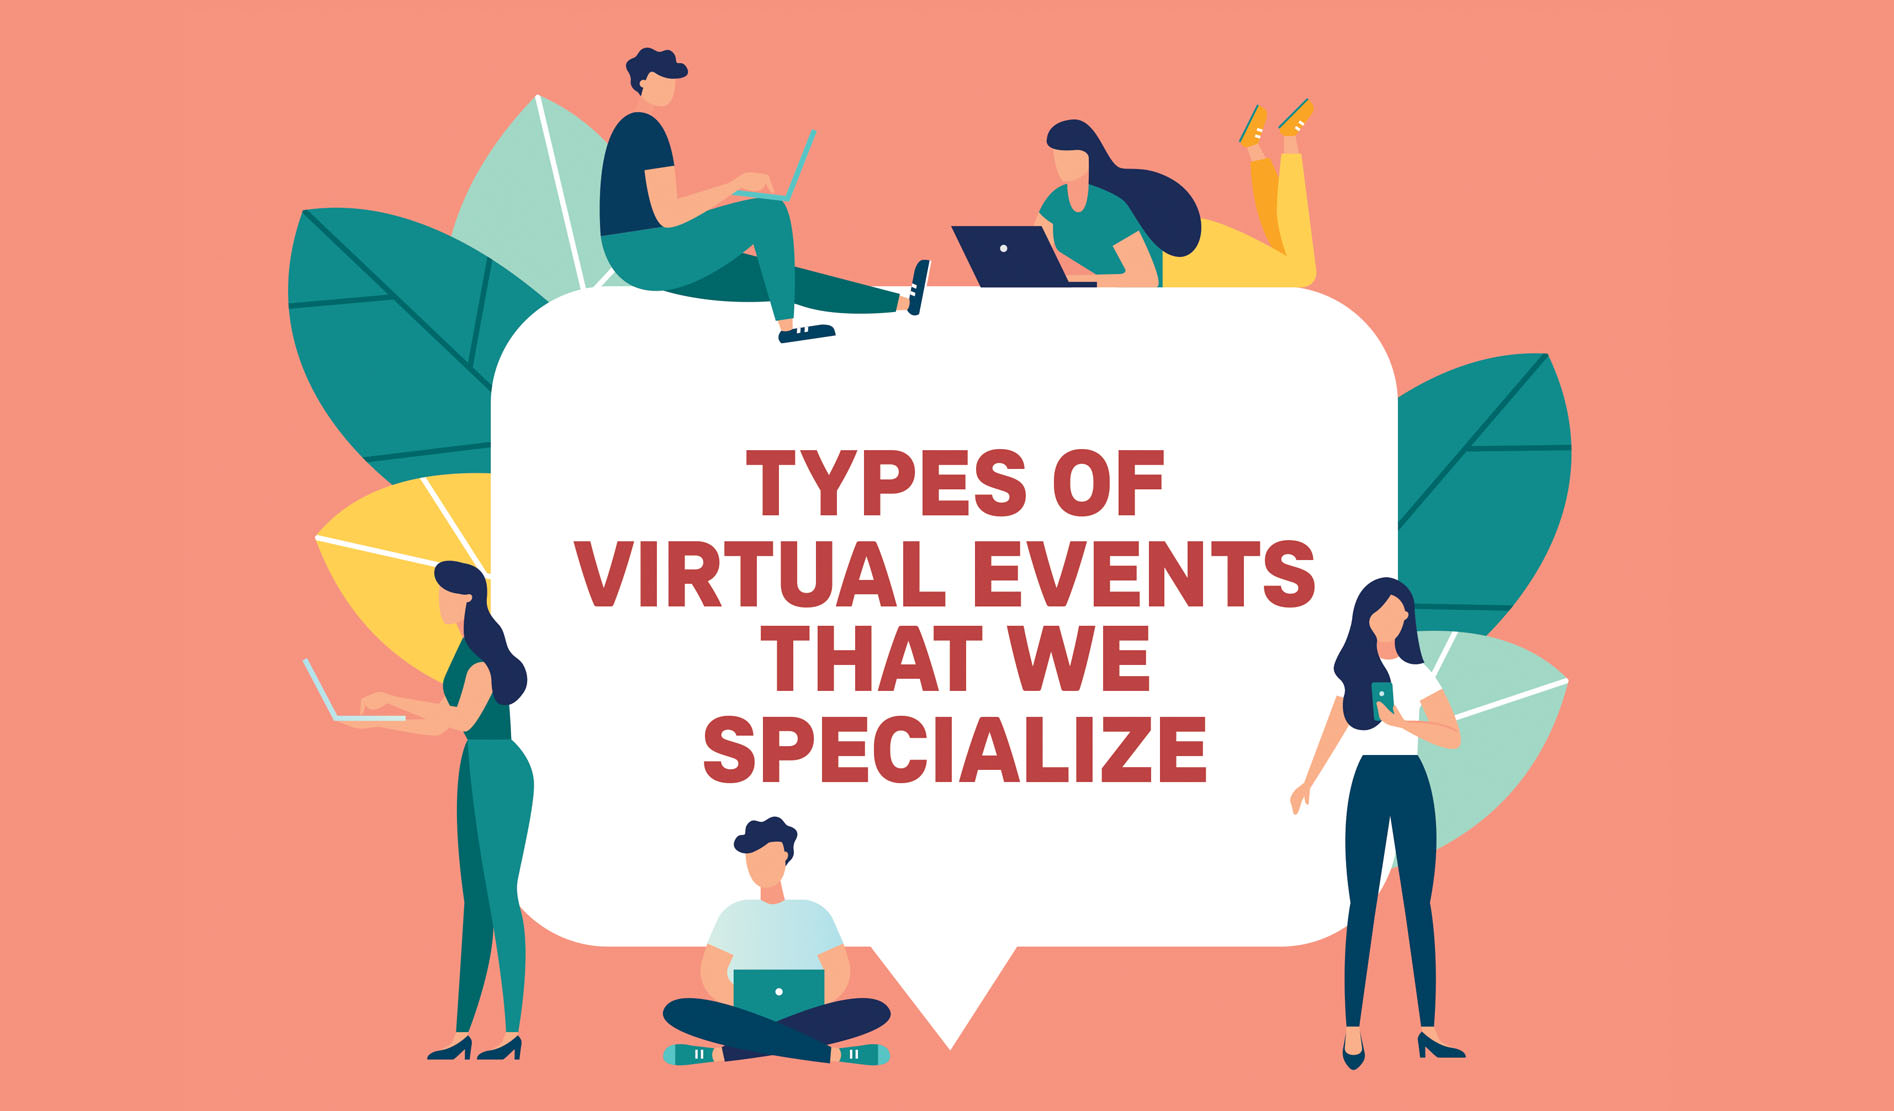 Types of virtual events that we specialise